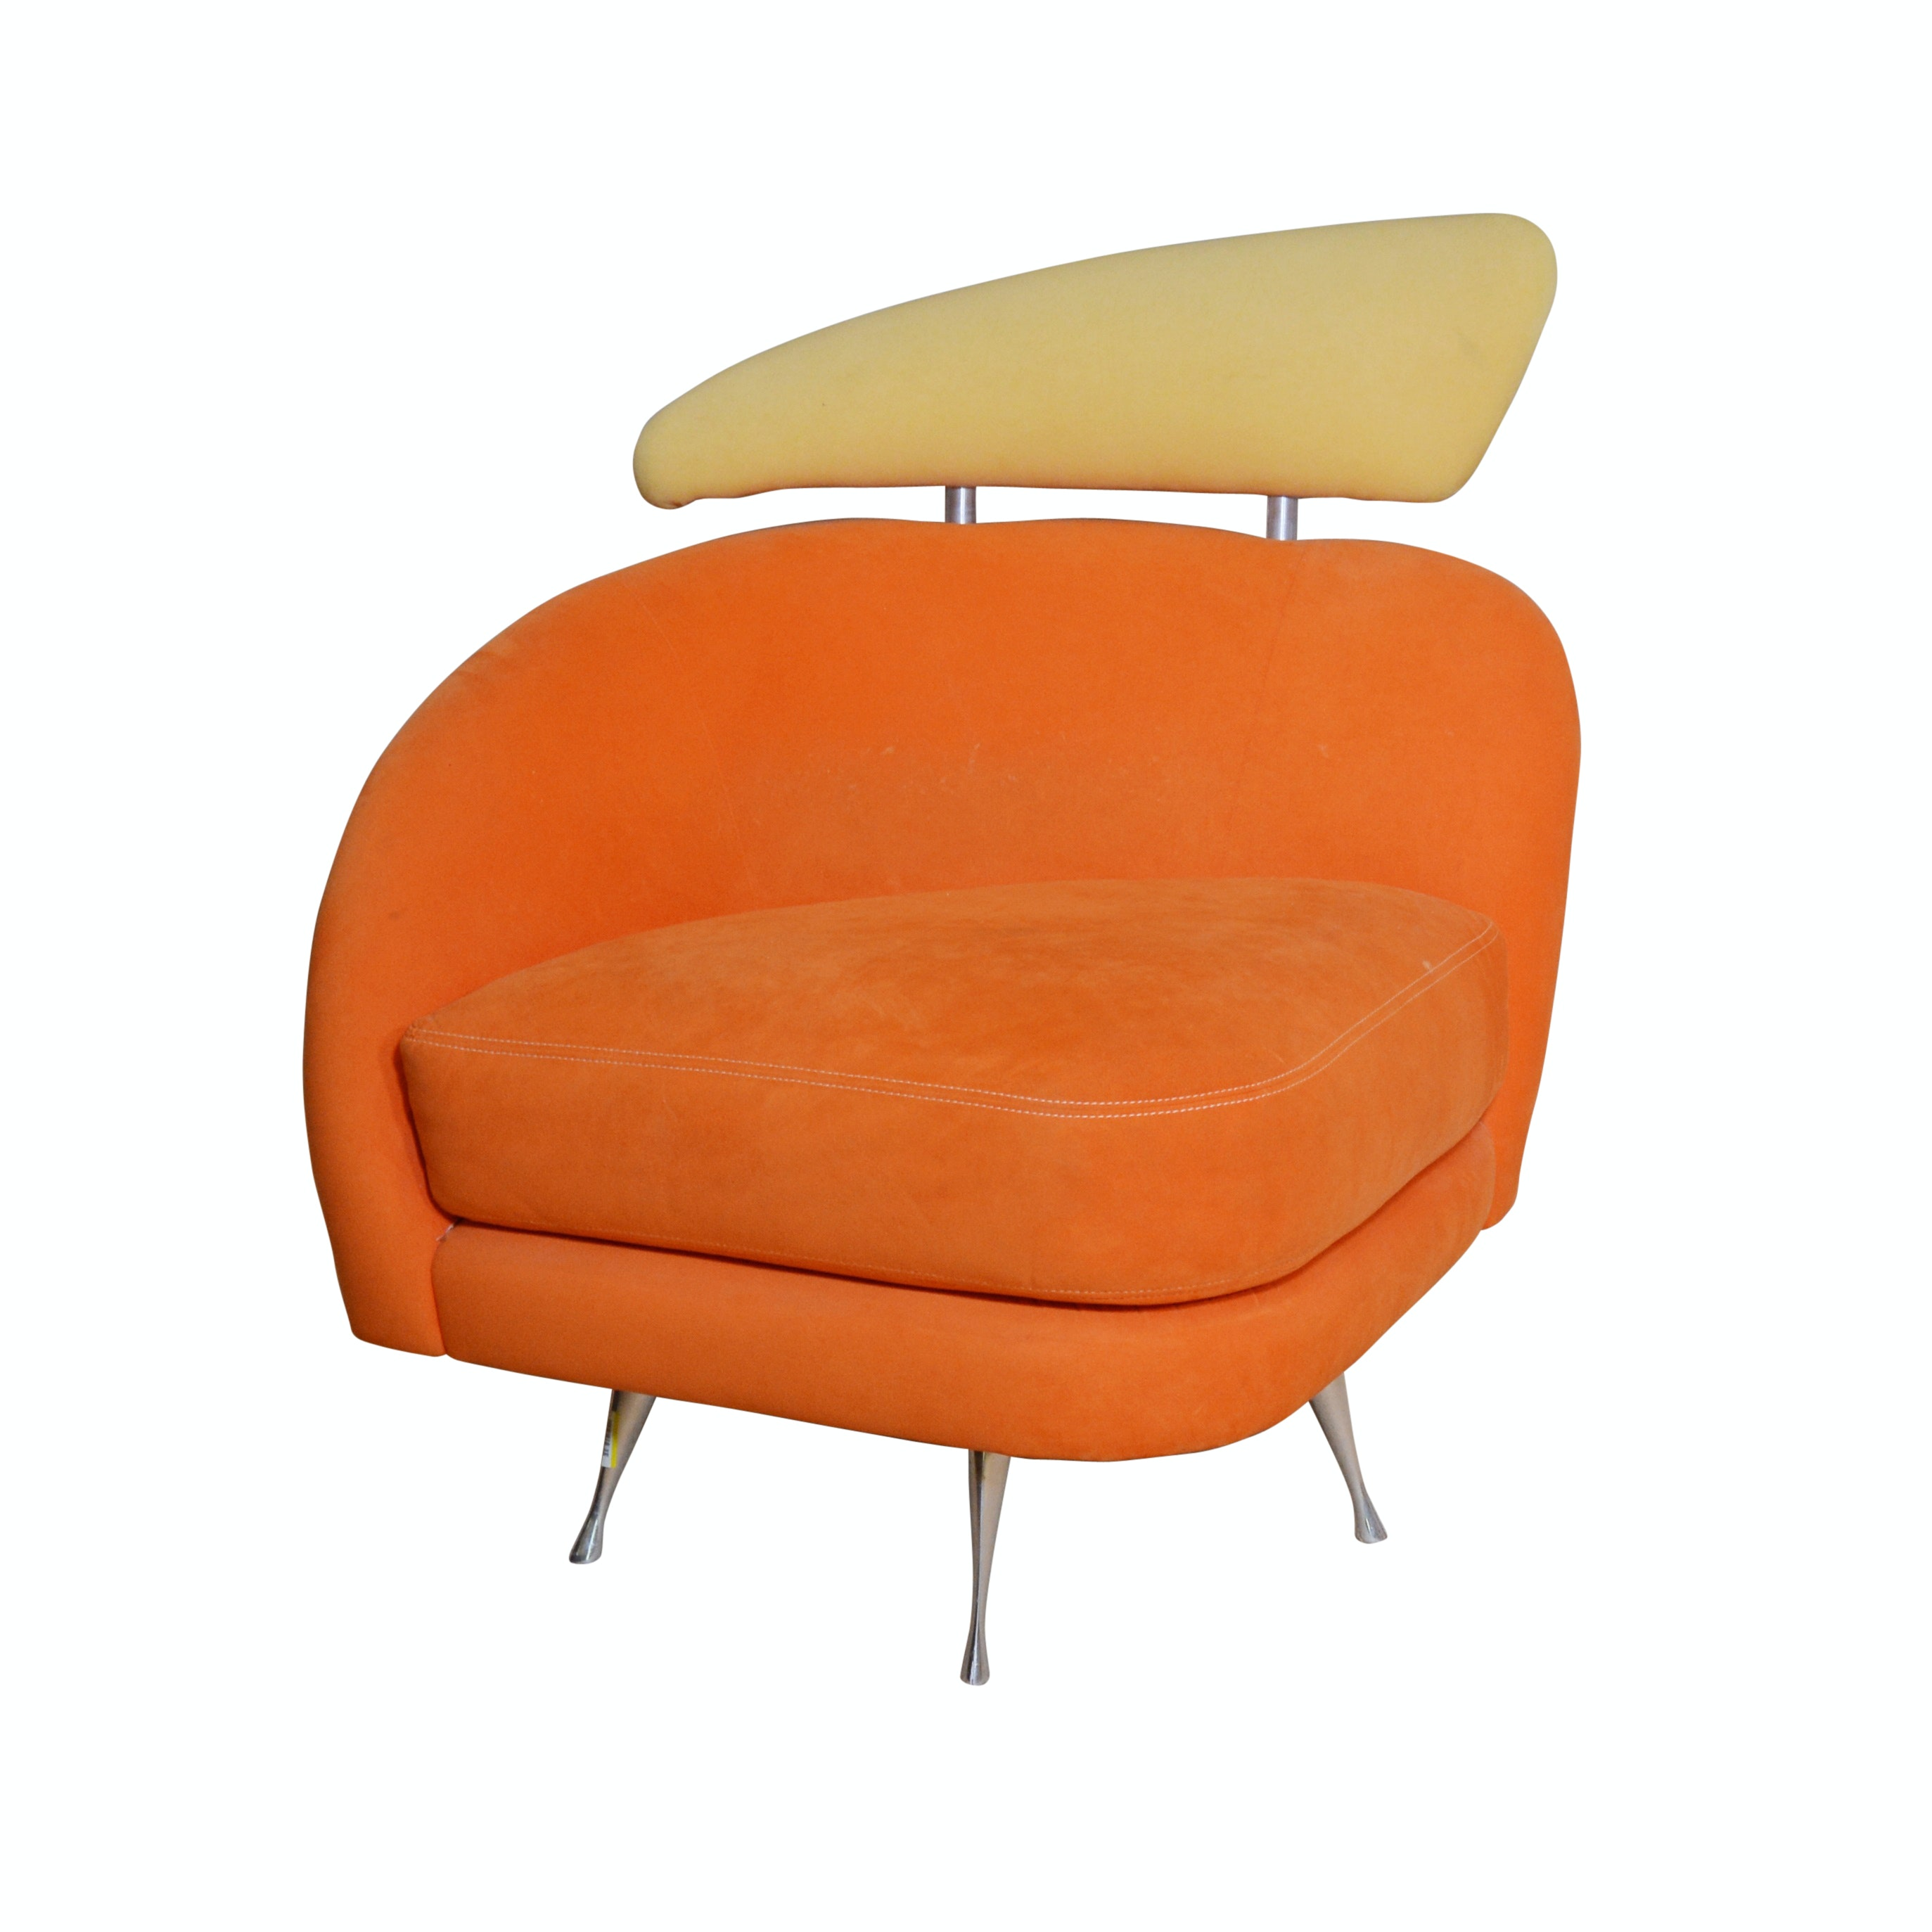 Modern Swivel Chair by American Leather Studio, 21st Century